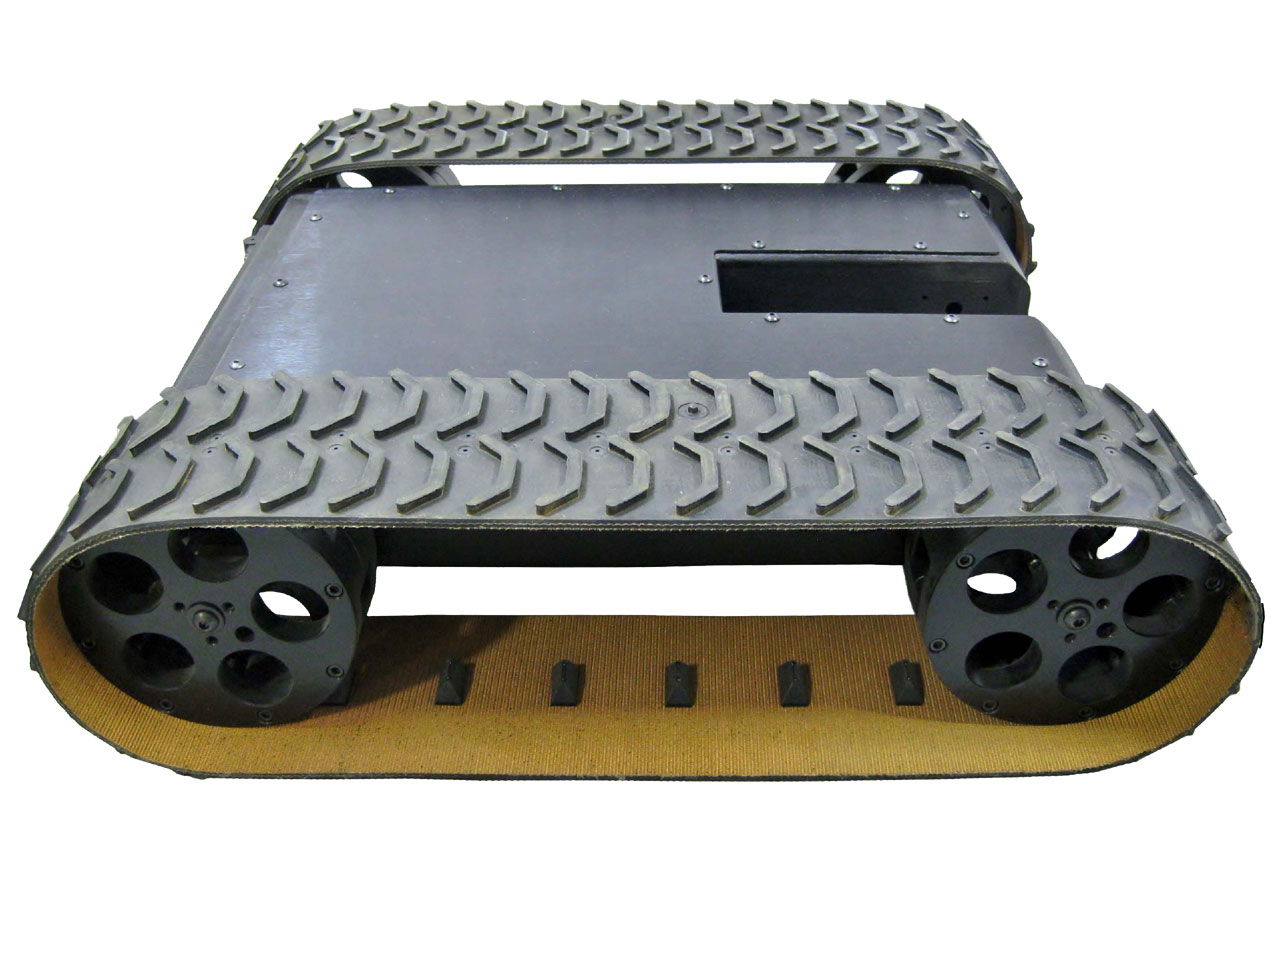 MMP-15 Mechanical Mobile Platform - MMP15